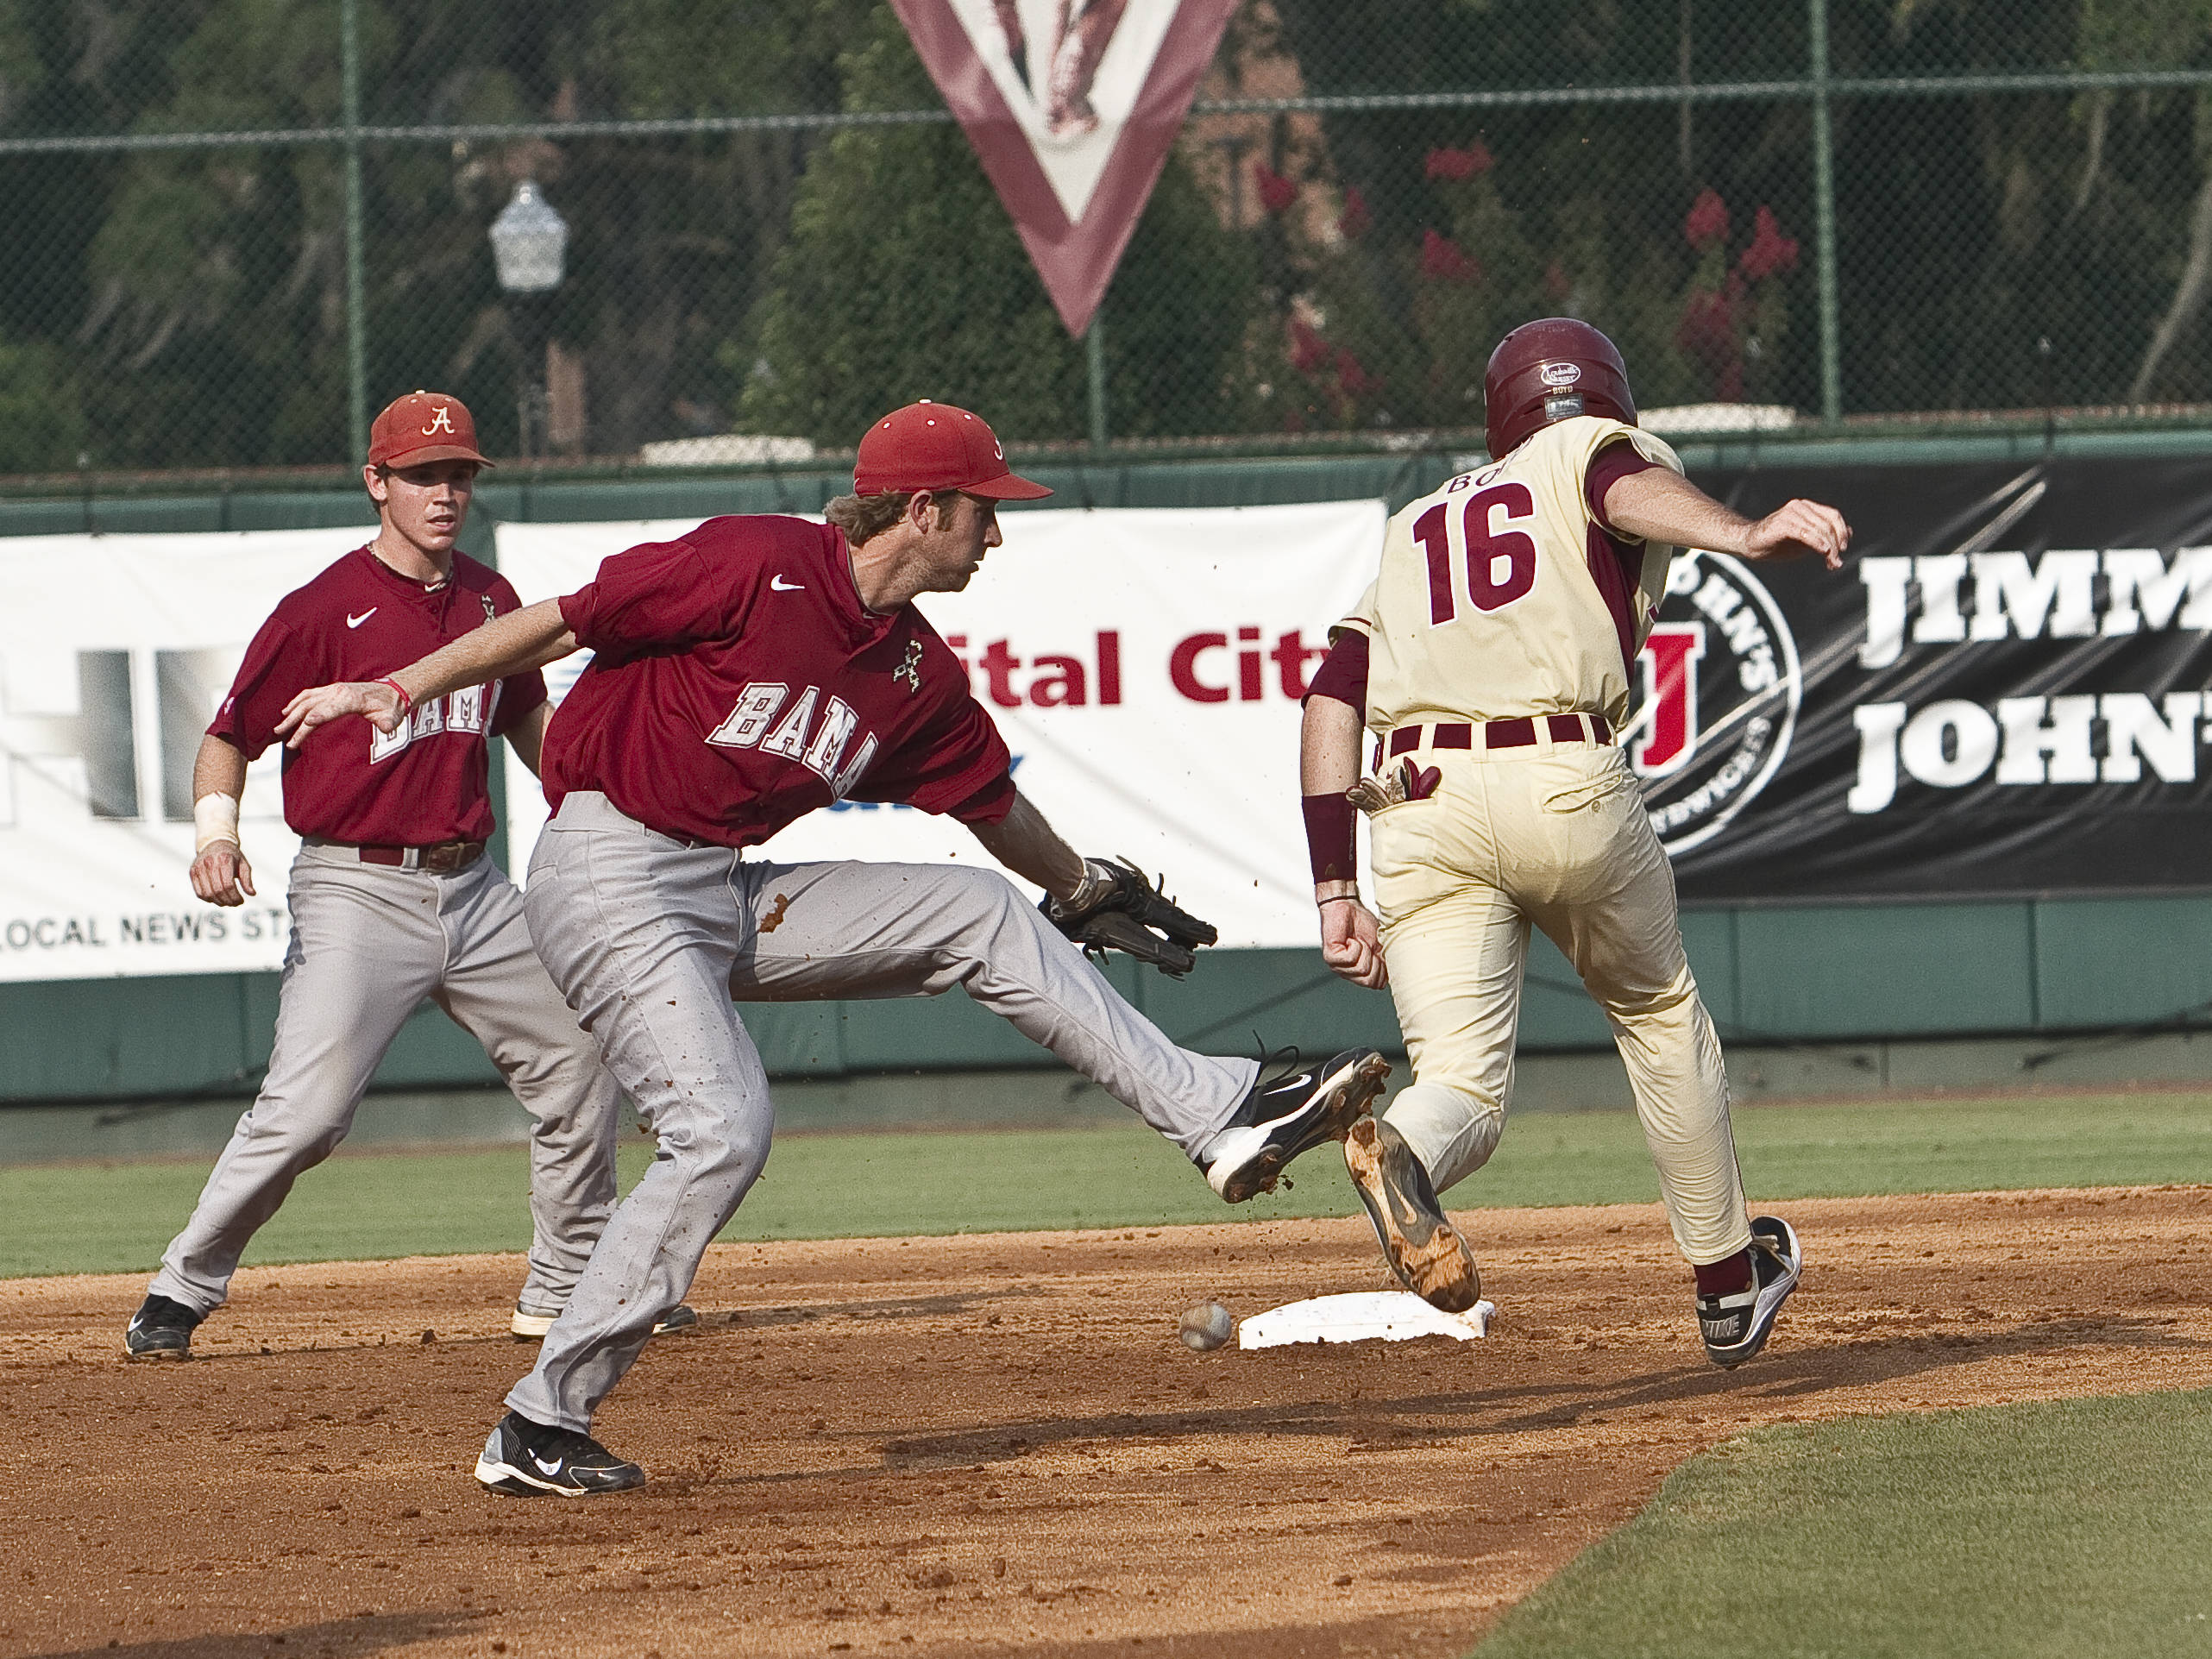 First baseman Jayce Boyd (16) is safe after avoiding the tag in a rundown.